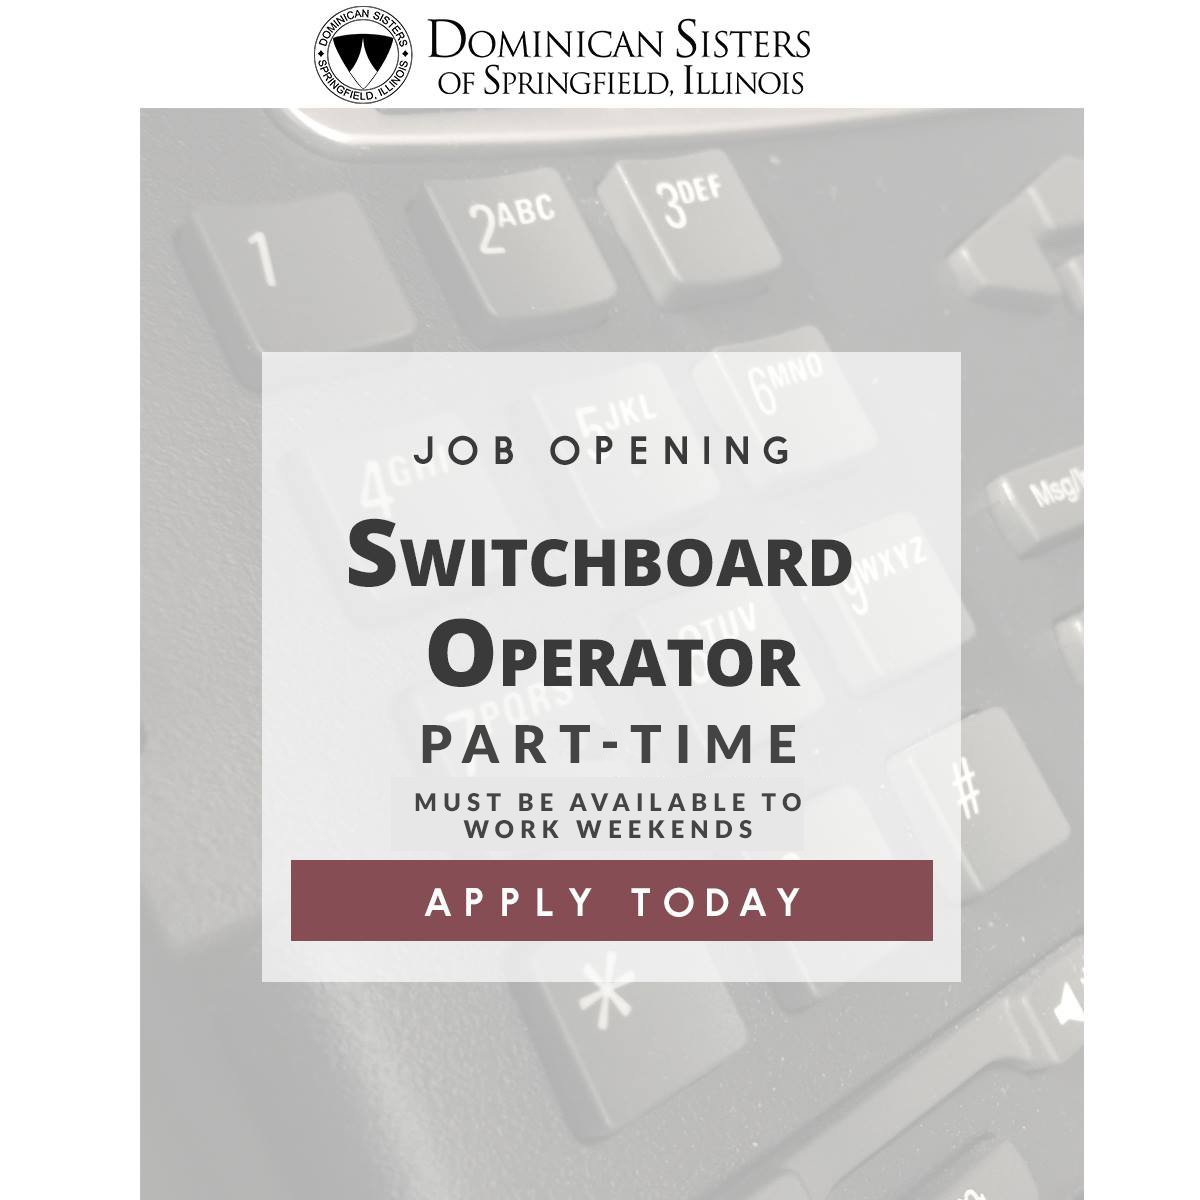 #Employment Opportunity!  Switchboard Operator – Part-Time, must be available to work weekends.   Click here for more details and how to apply: springfieldop.org/join-us-2/empl…  #job #careers